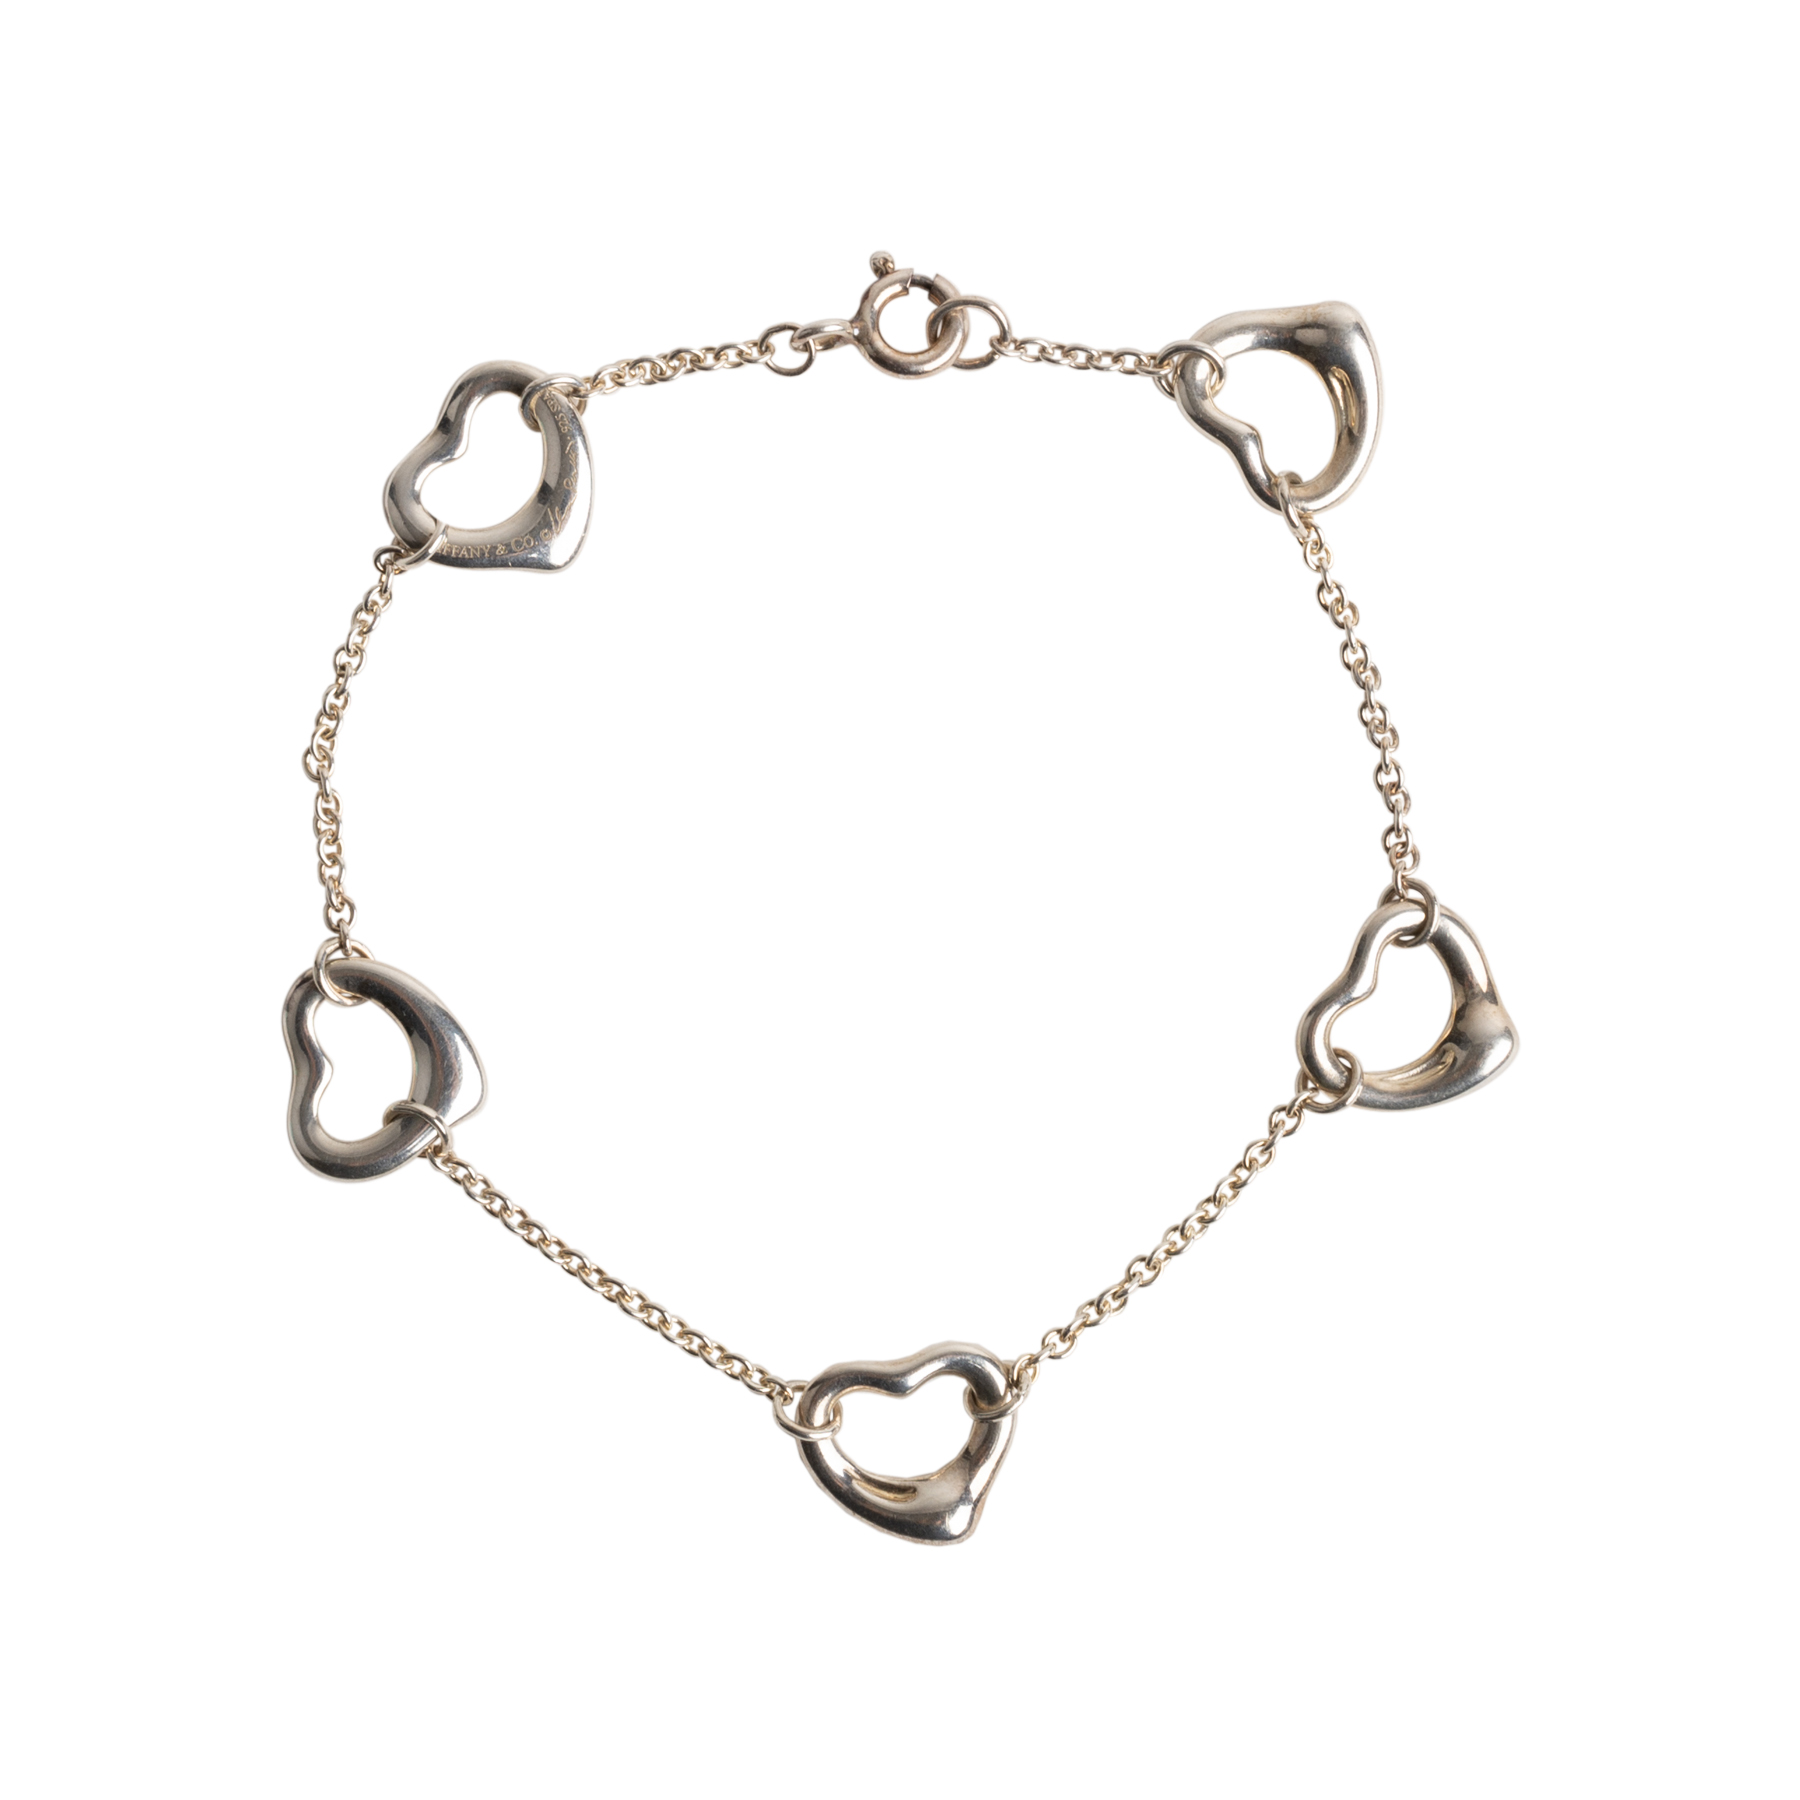 34e604ff4 Authentic Second Hand Tiffany & Co Open Heart Bracelet (PSS-668-00014) -  THE FIFTH COLLECTION